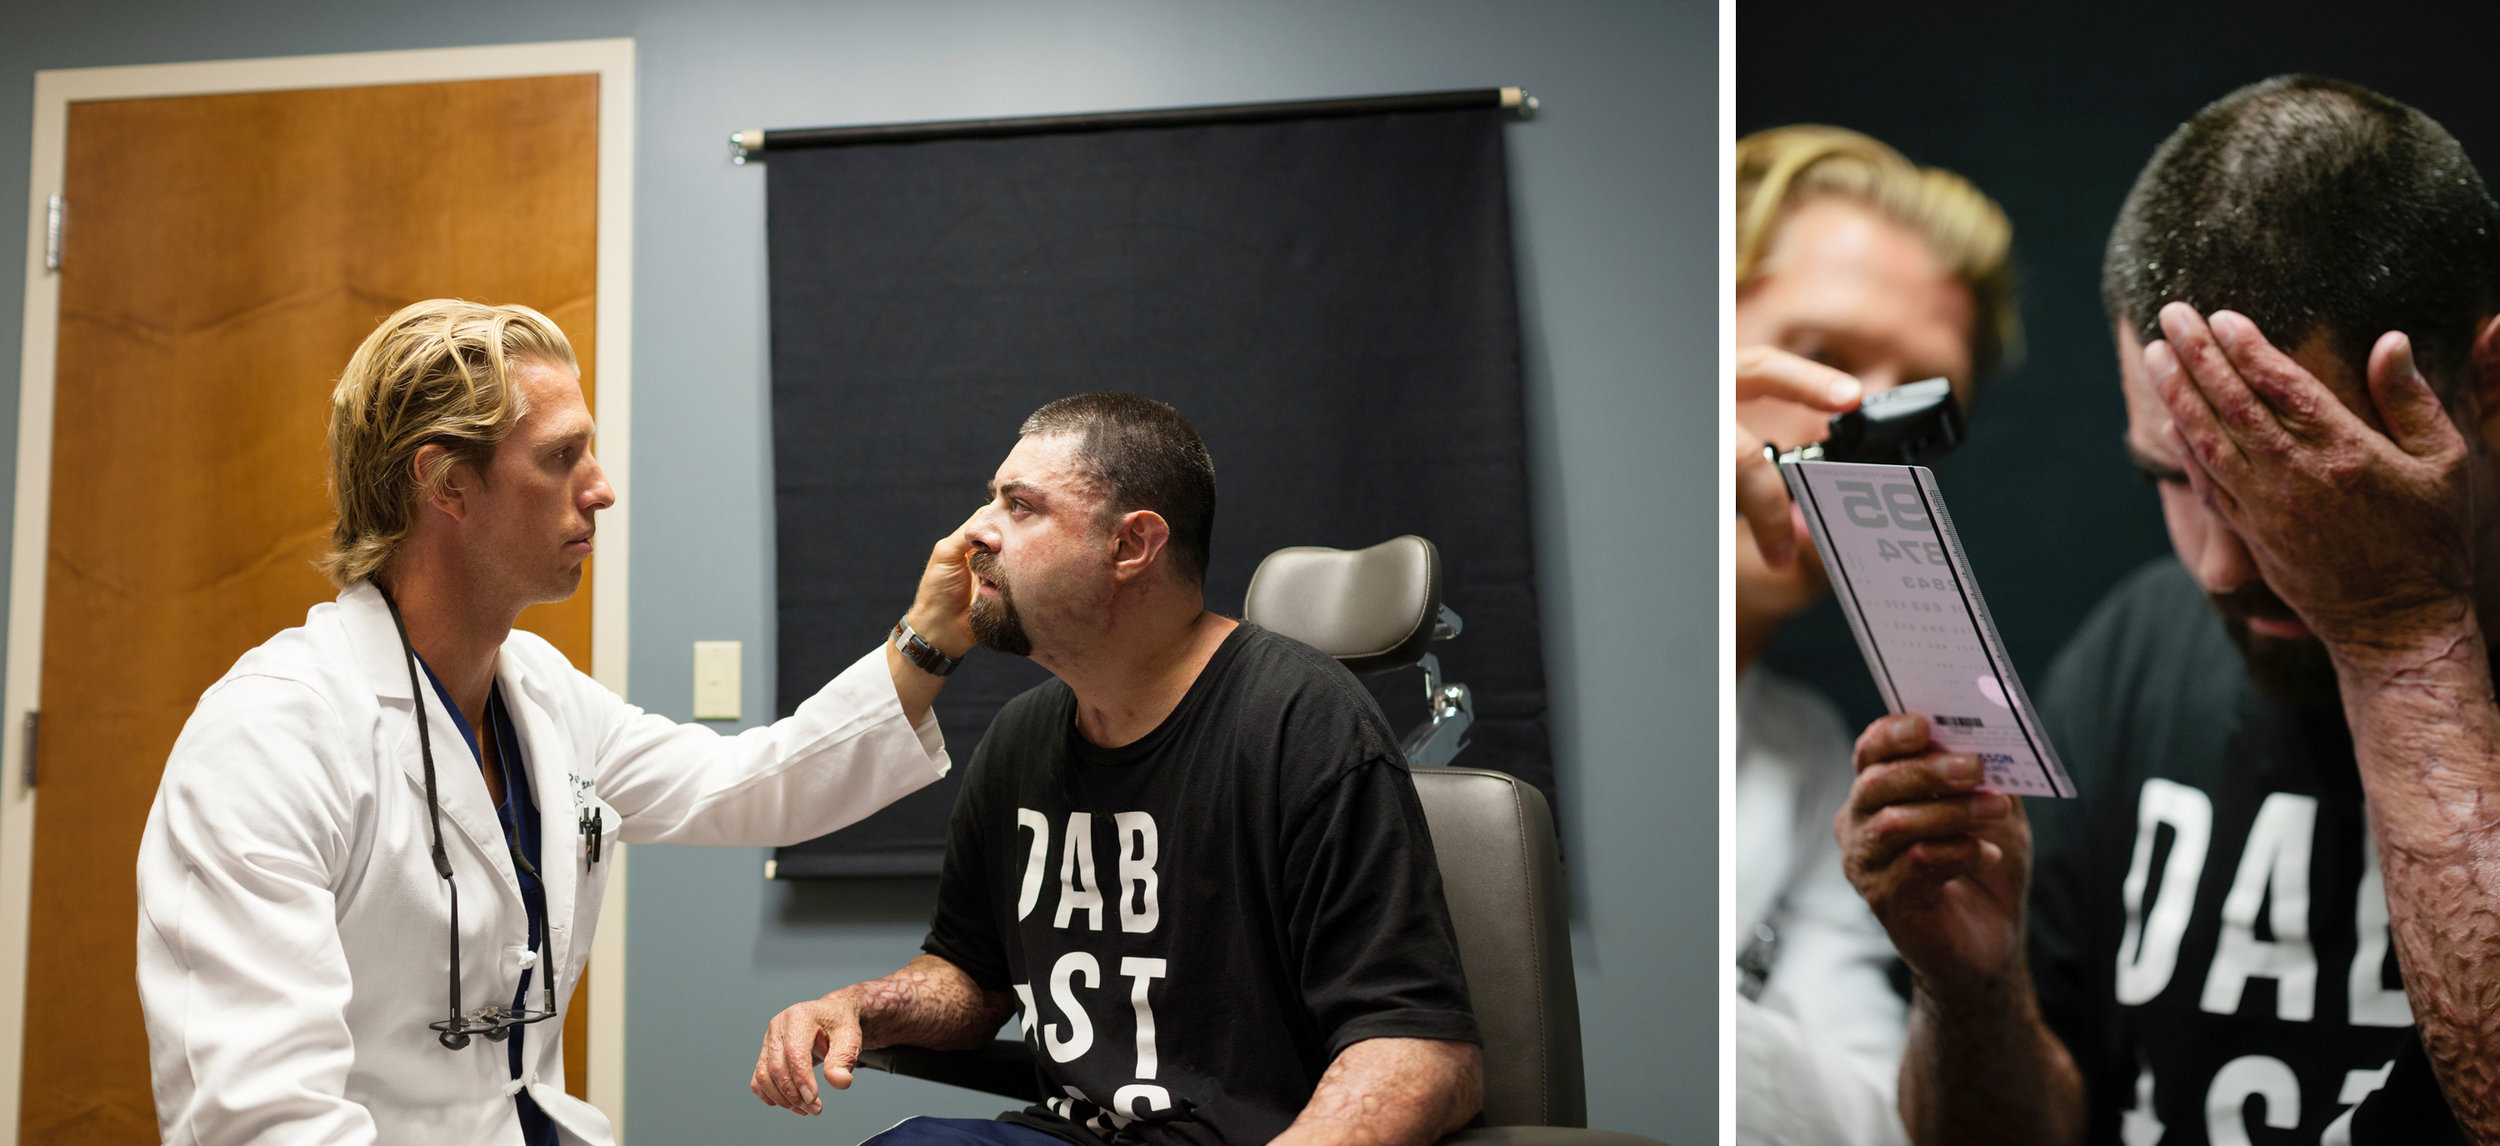 Joshua undergoes an eye exam. ©Kristen Angelo